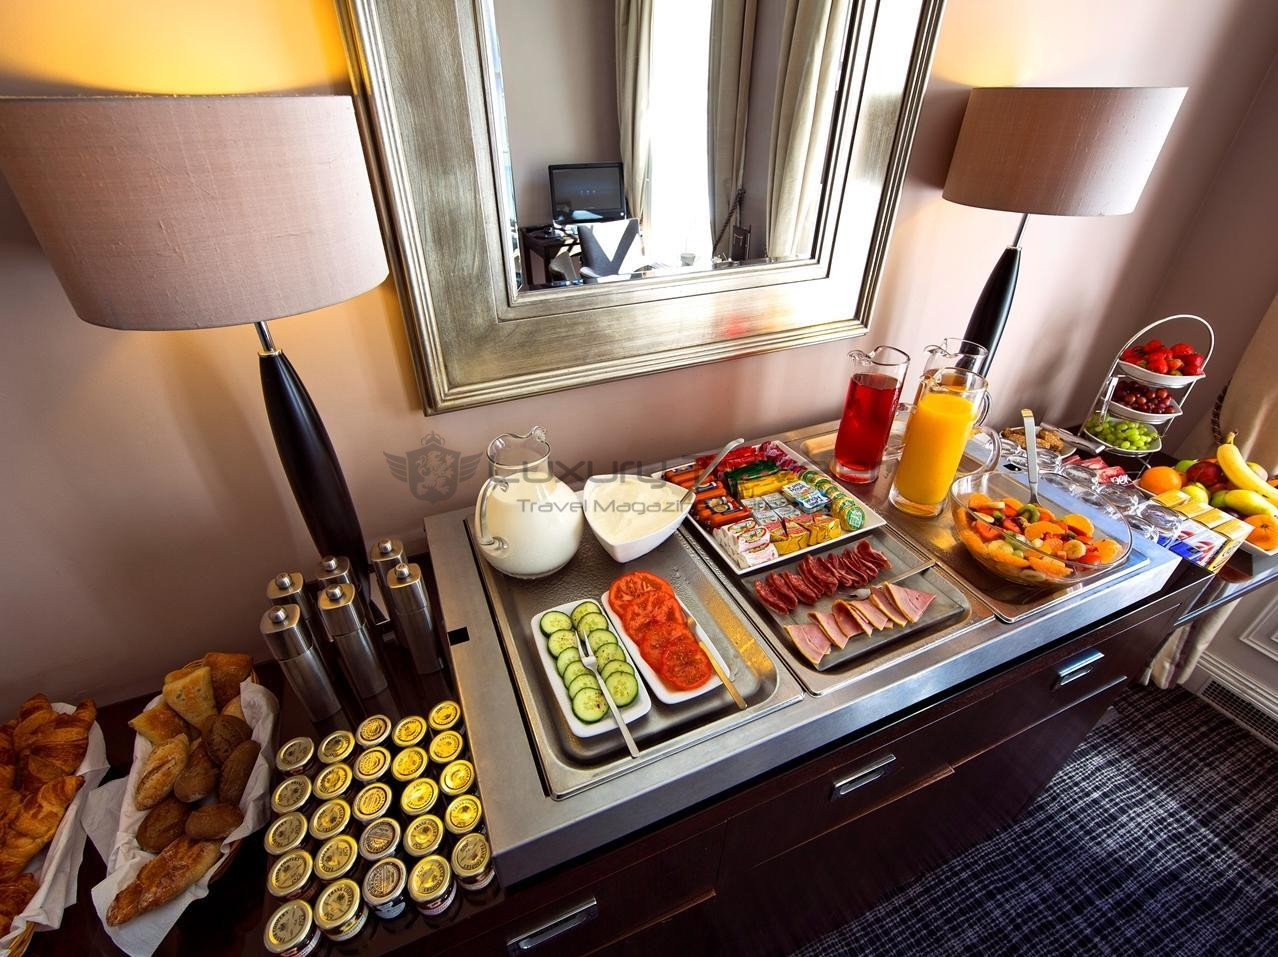 Montagu_Place_Hotel_London_Breakfast_Luxury